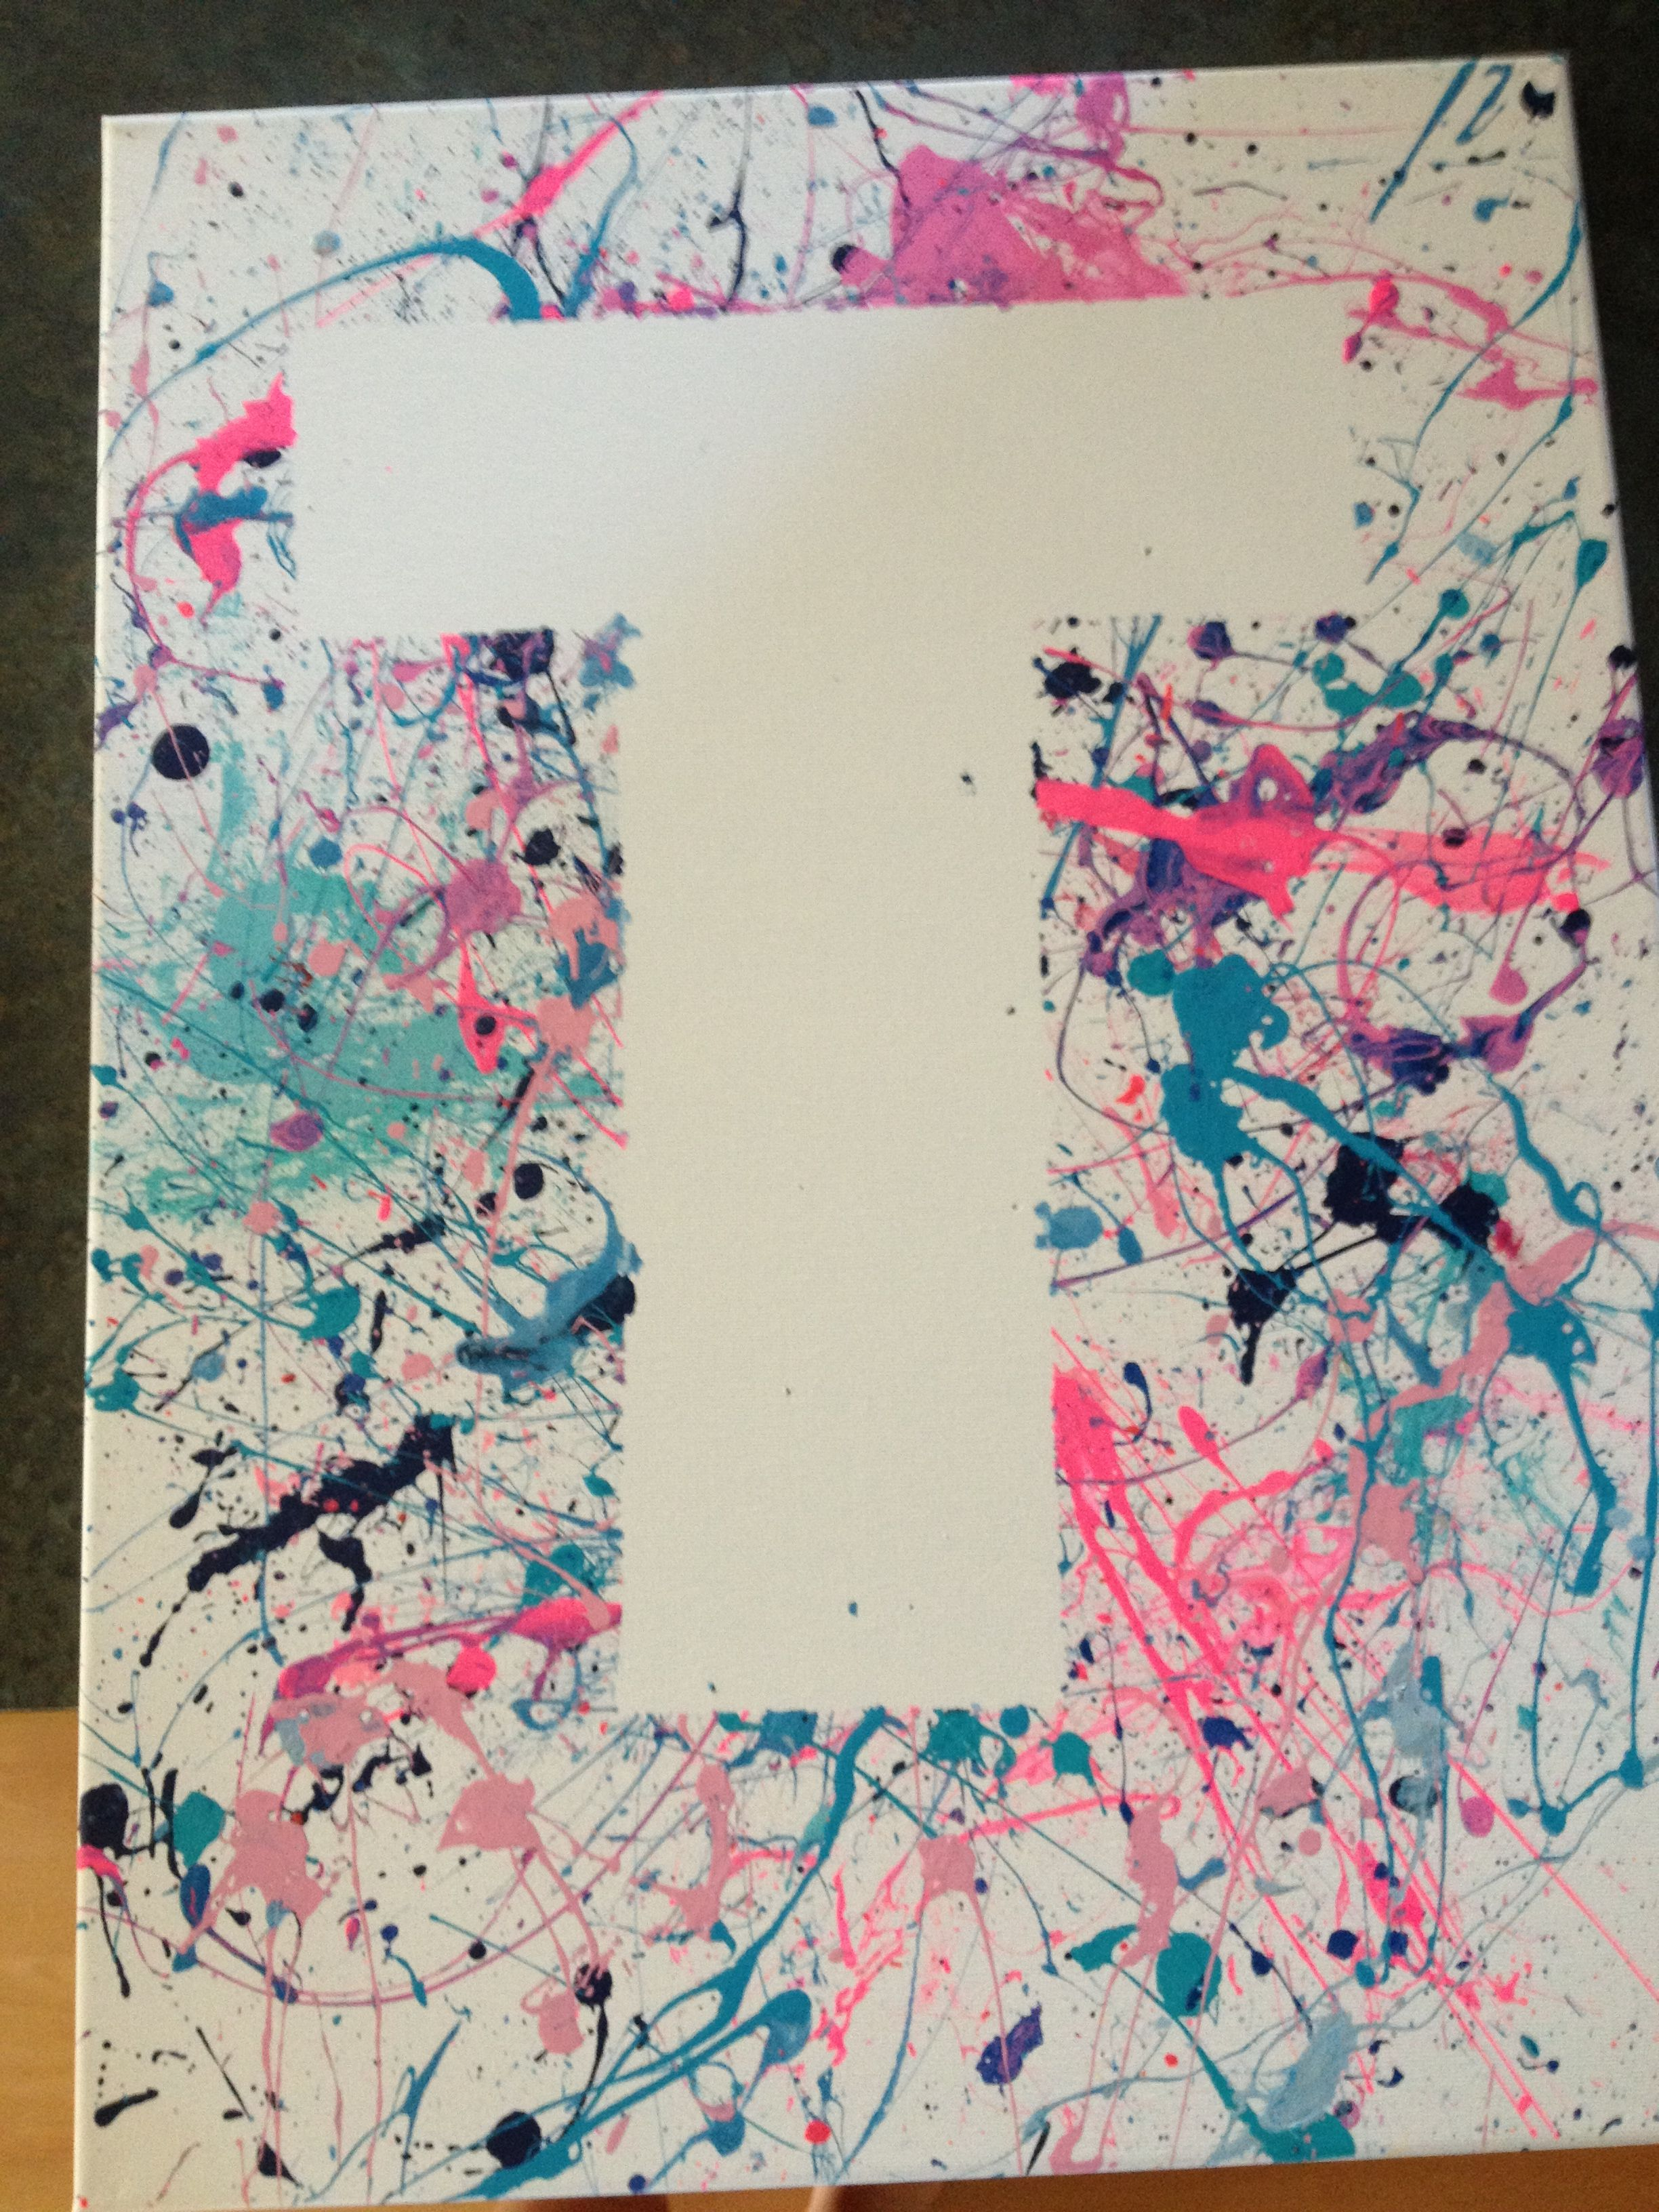 T splatter paint canvas for my dorm blow up balloons filled with paint and throw darts at them